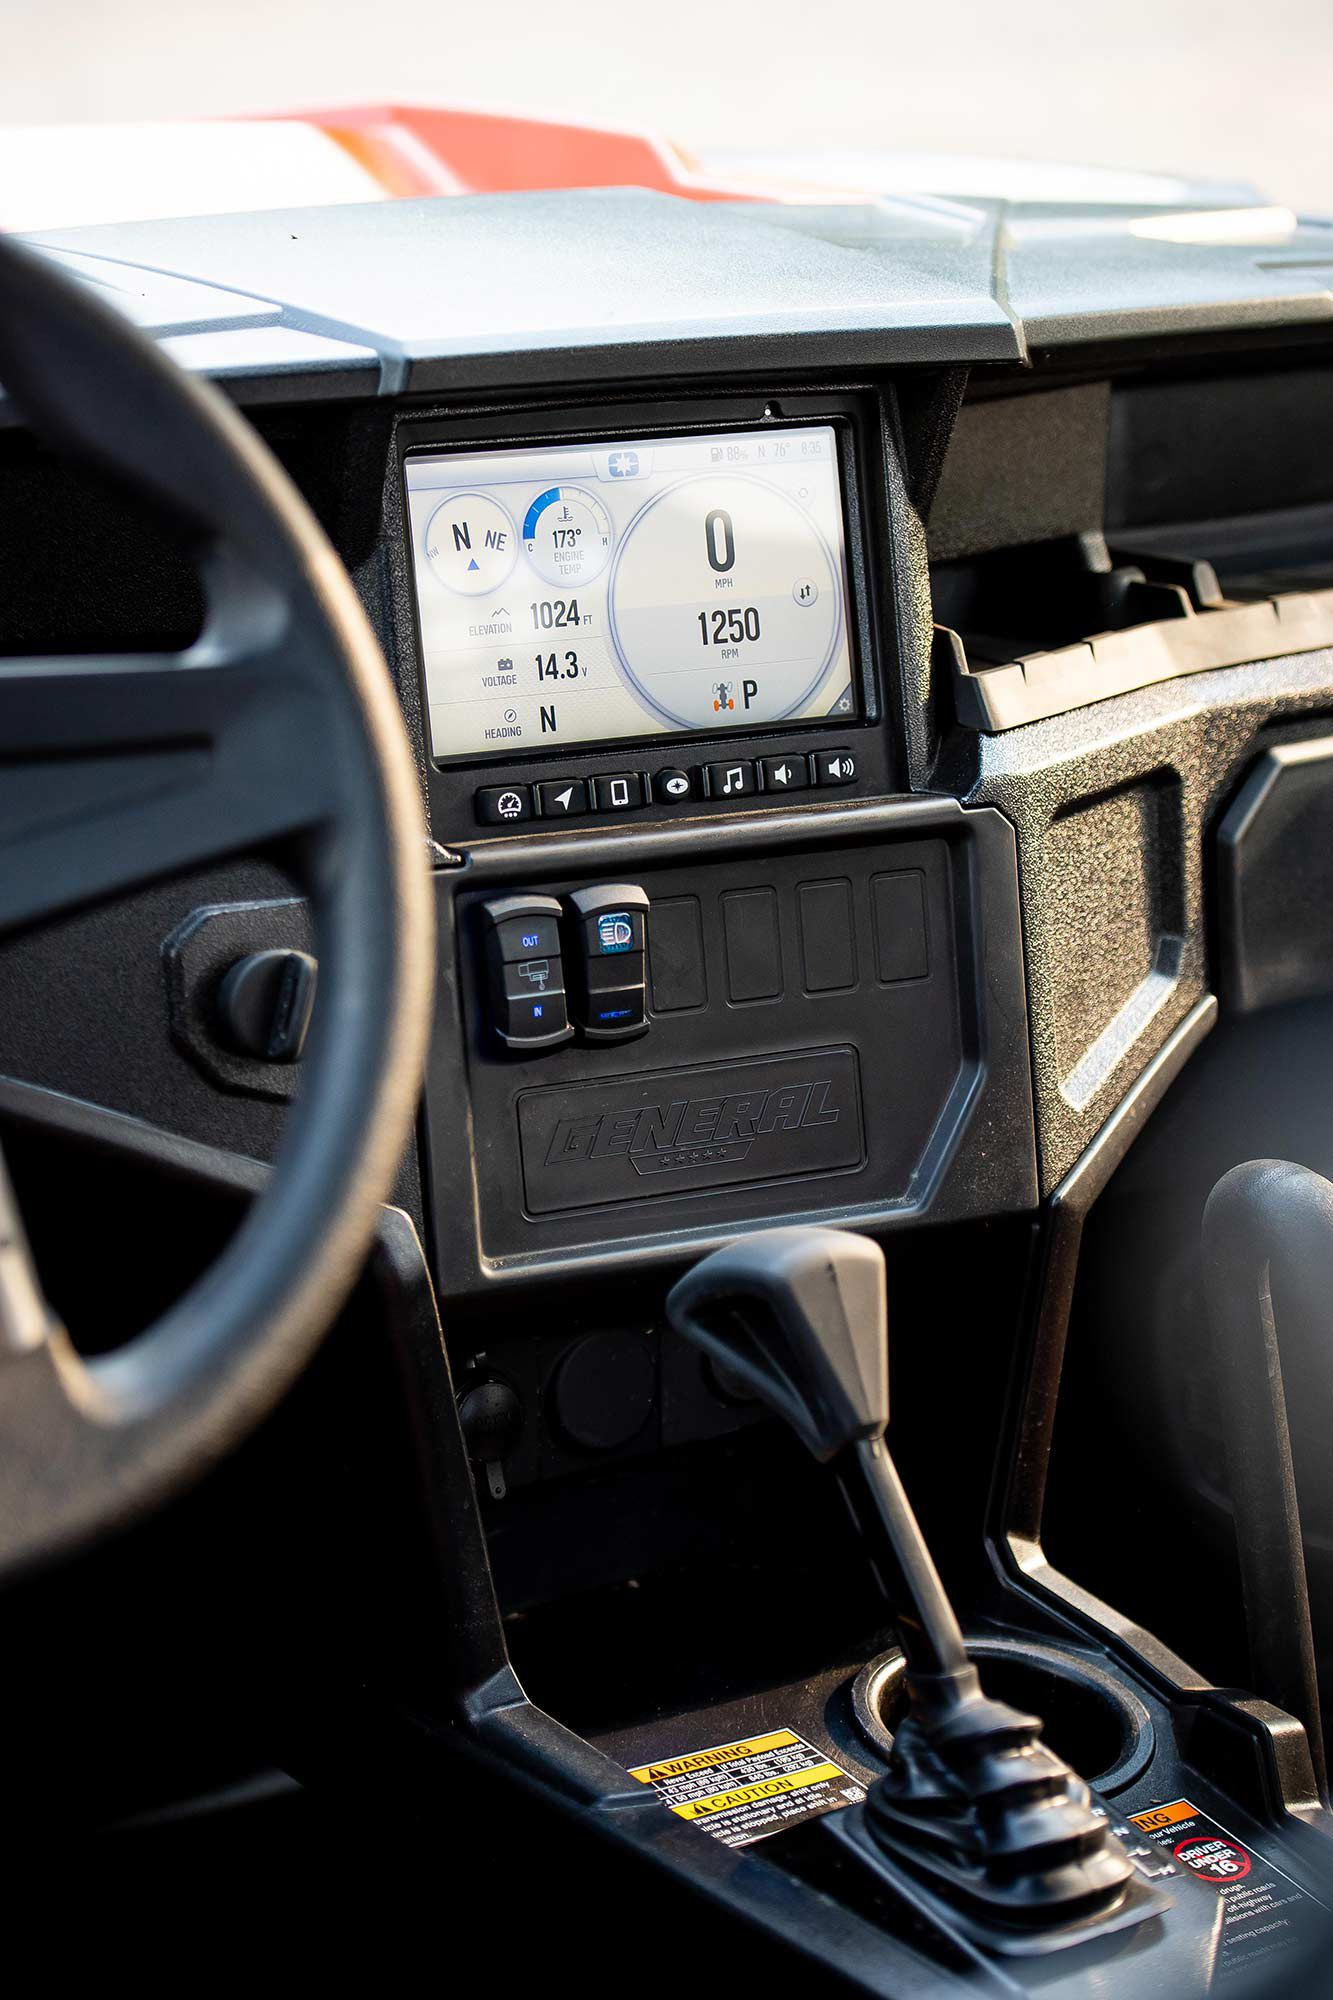 An all-weather interior is outfitted with Polaris Ride Command to make sure you always know where you are and what's going on.